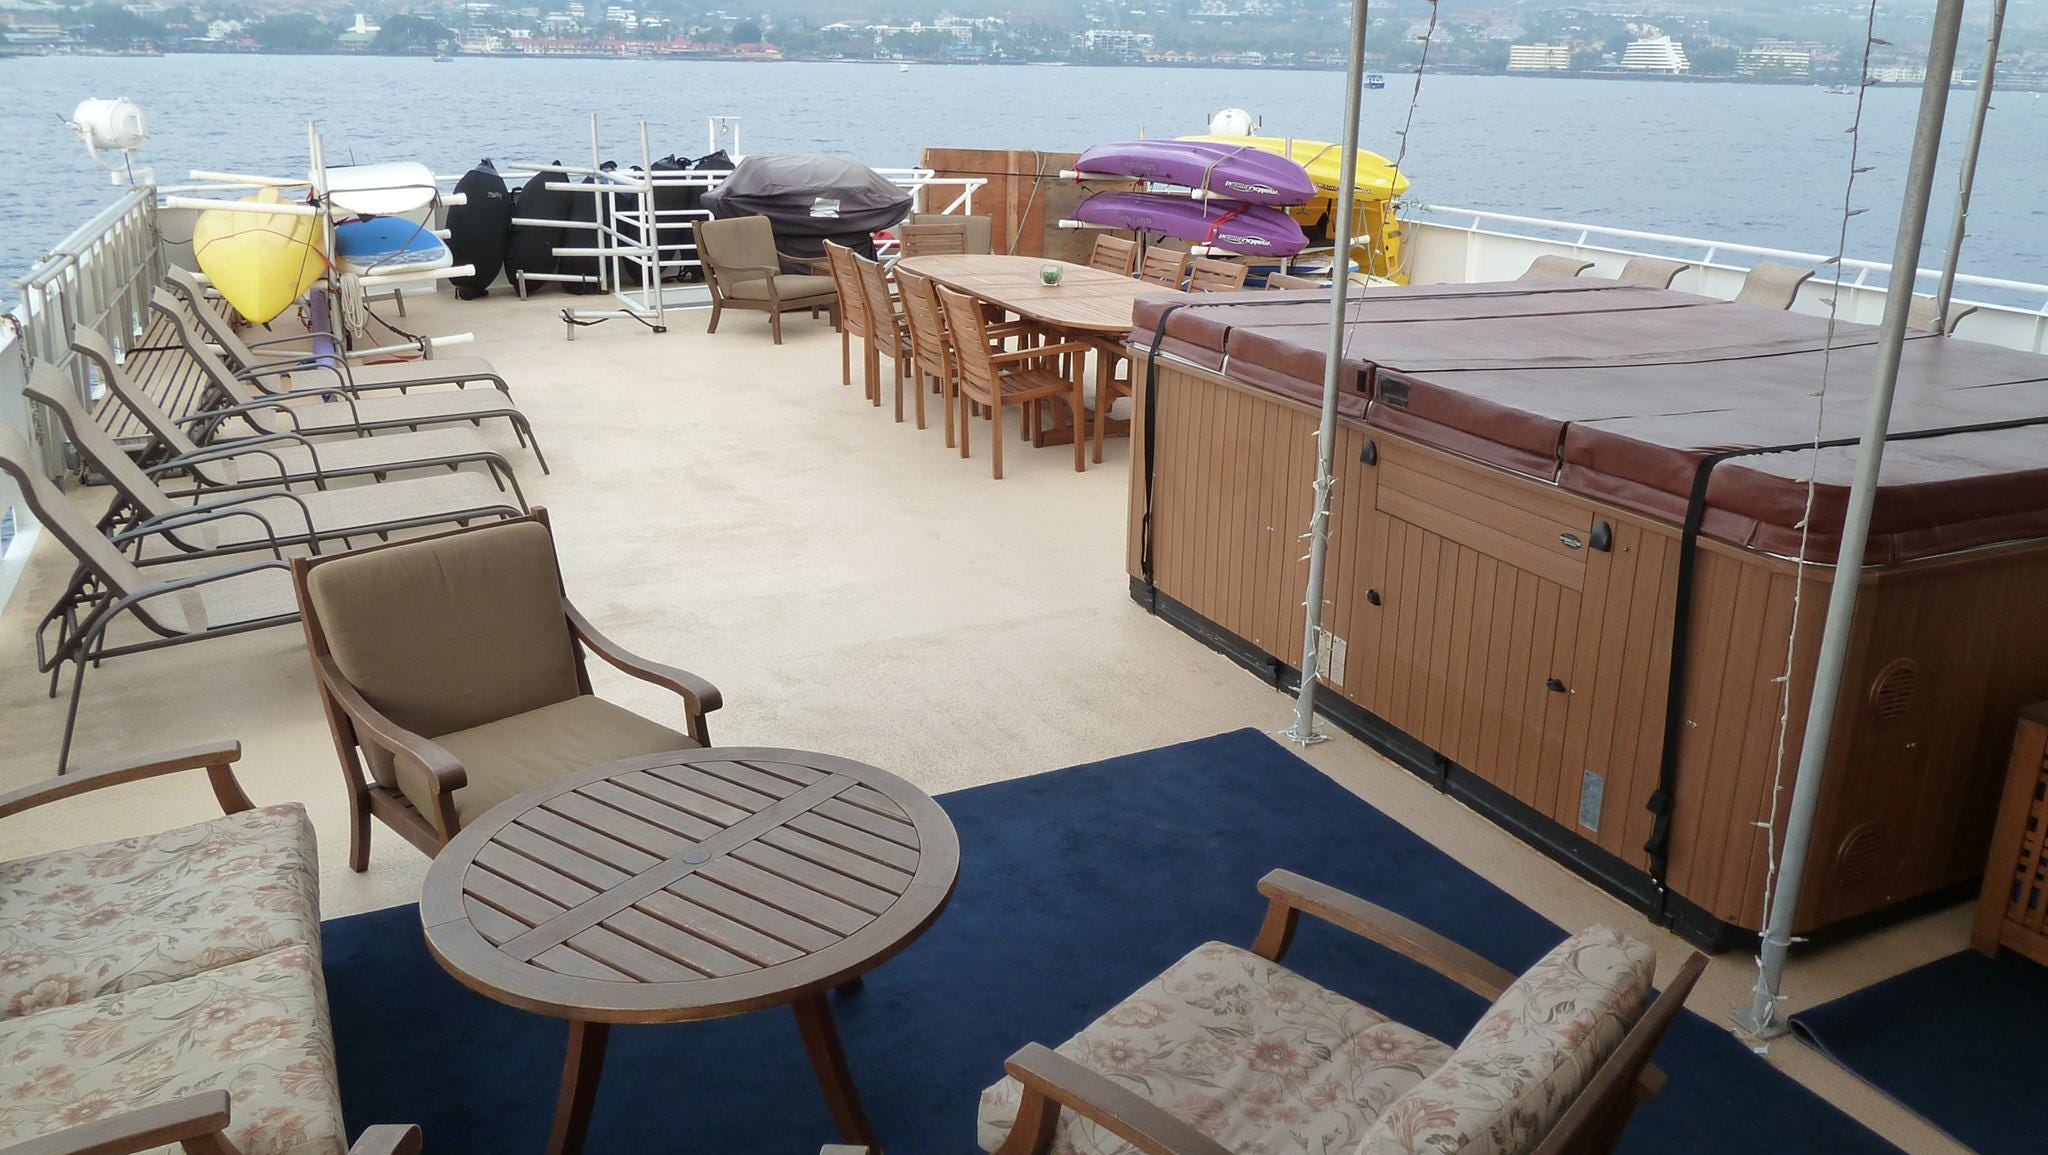 There is a large hot tub that can be used during the Safari Explorer's Alaska sailings through the tranquil Inside Passage. The ship has a small sauna that is also available during its Alaska itineraries.